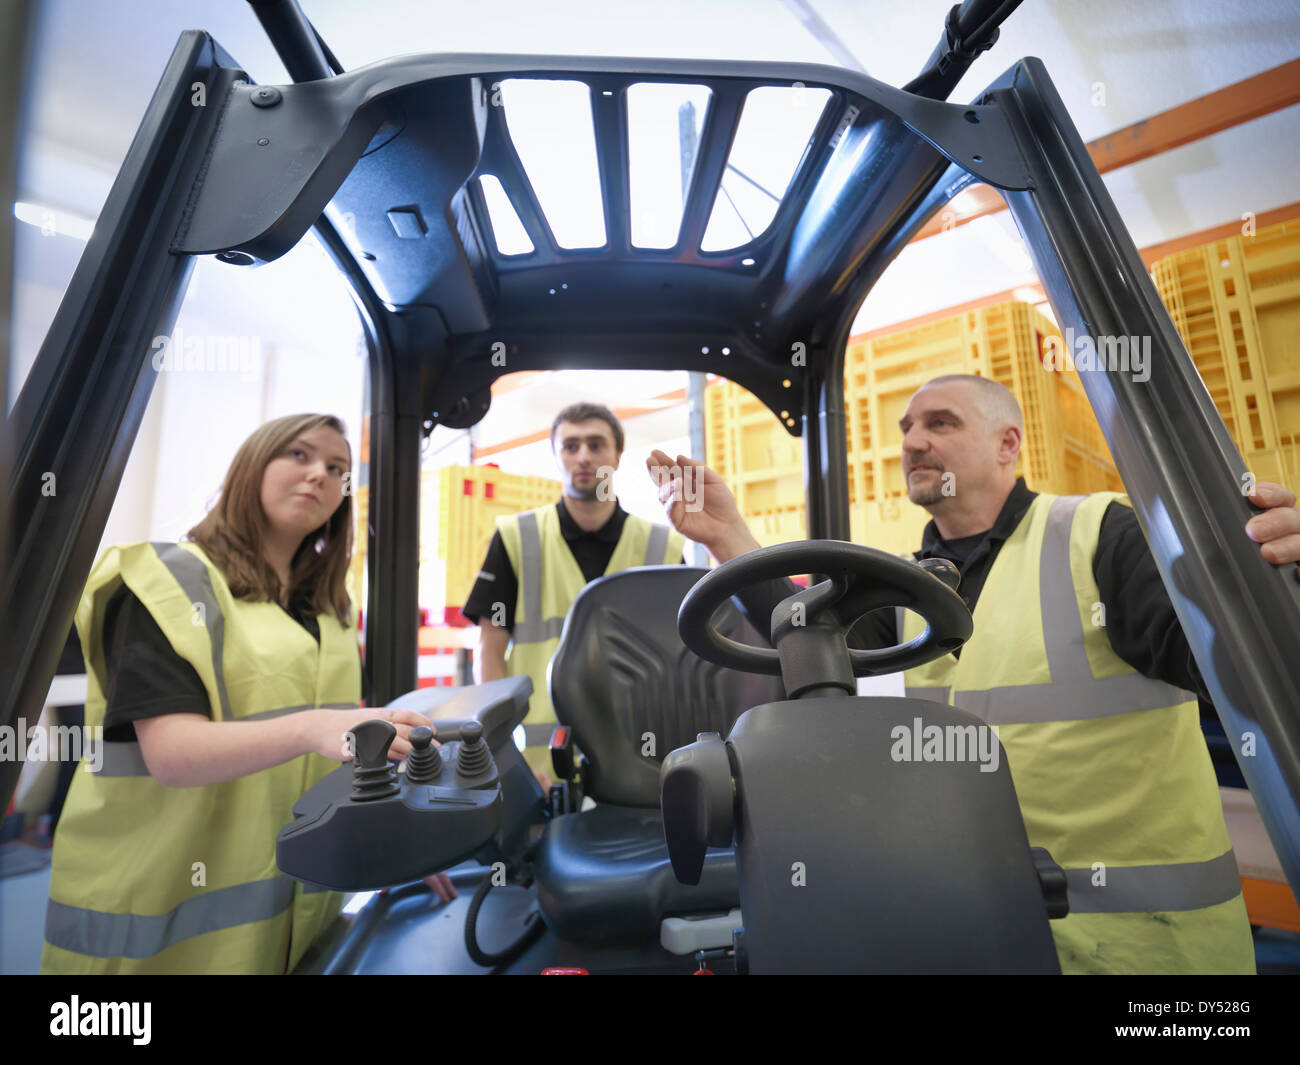 Instructor showing apprentices controls of forklift truck - Stock Image